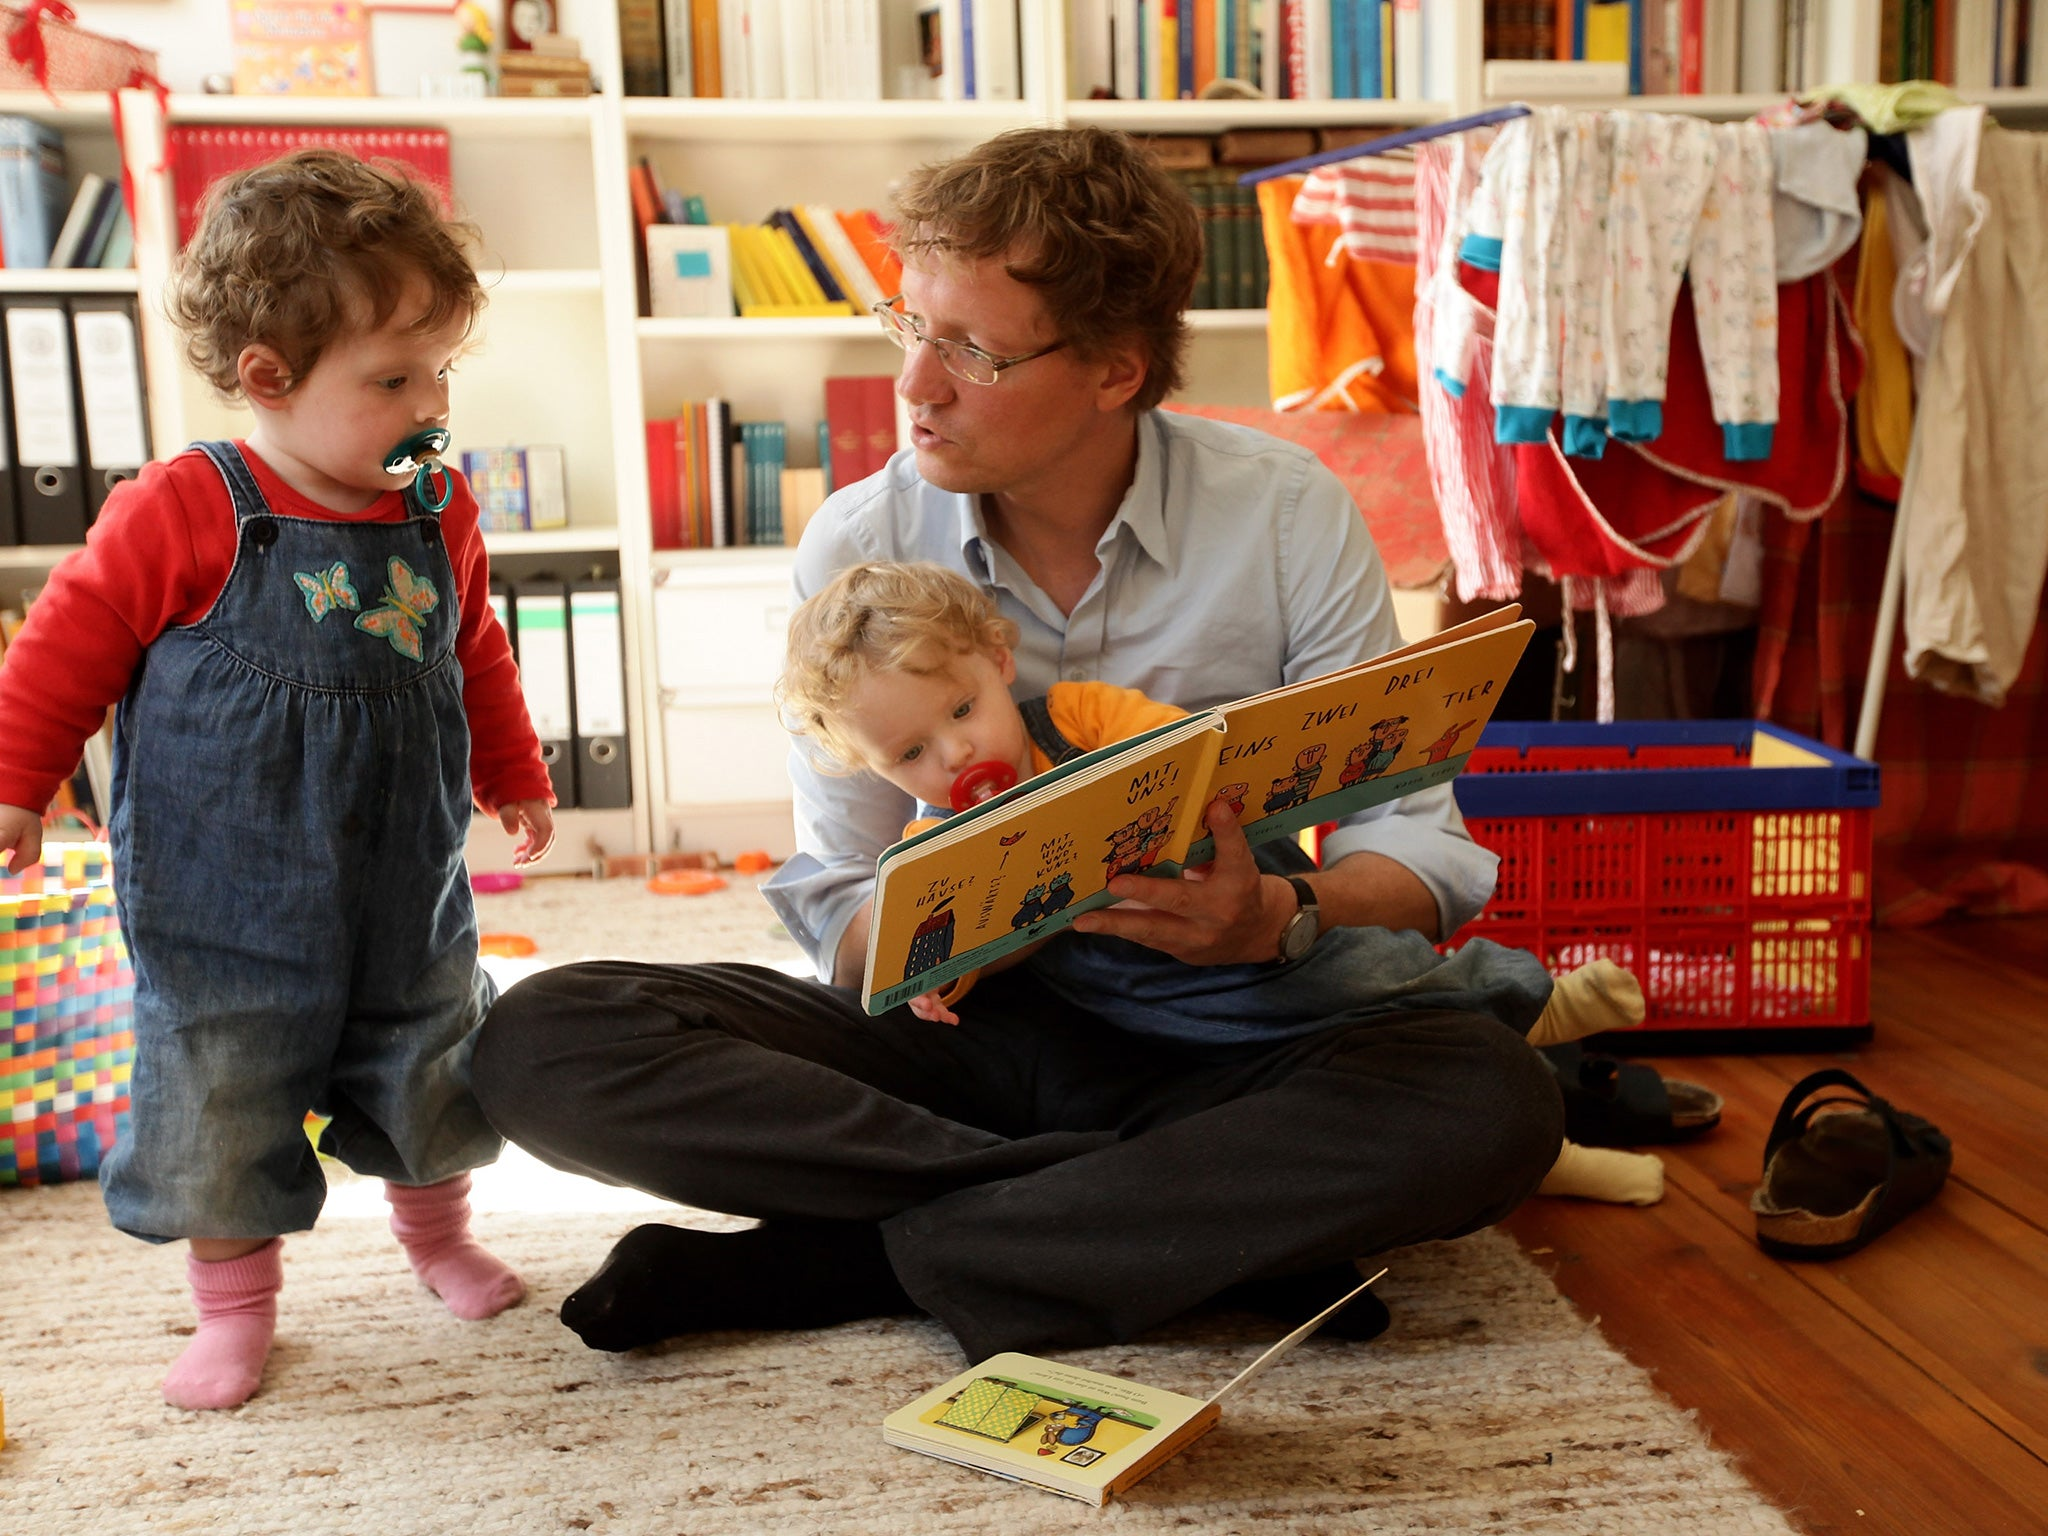 Genes and child: 15 features that are passed to the baby from the father